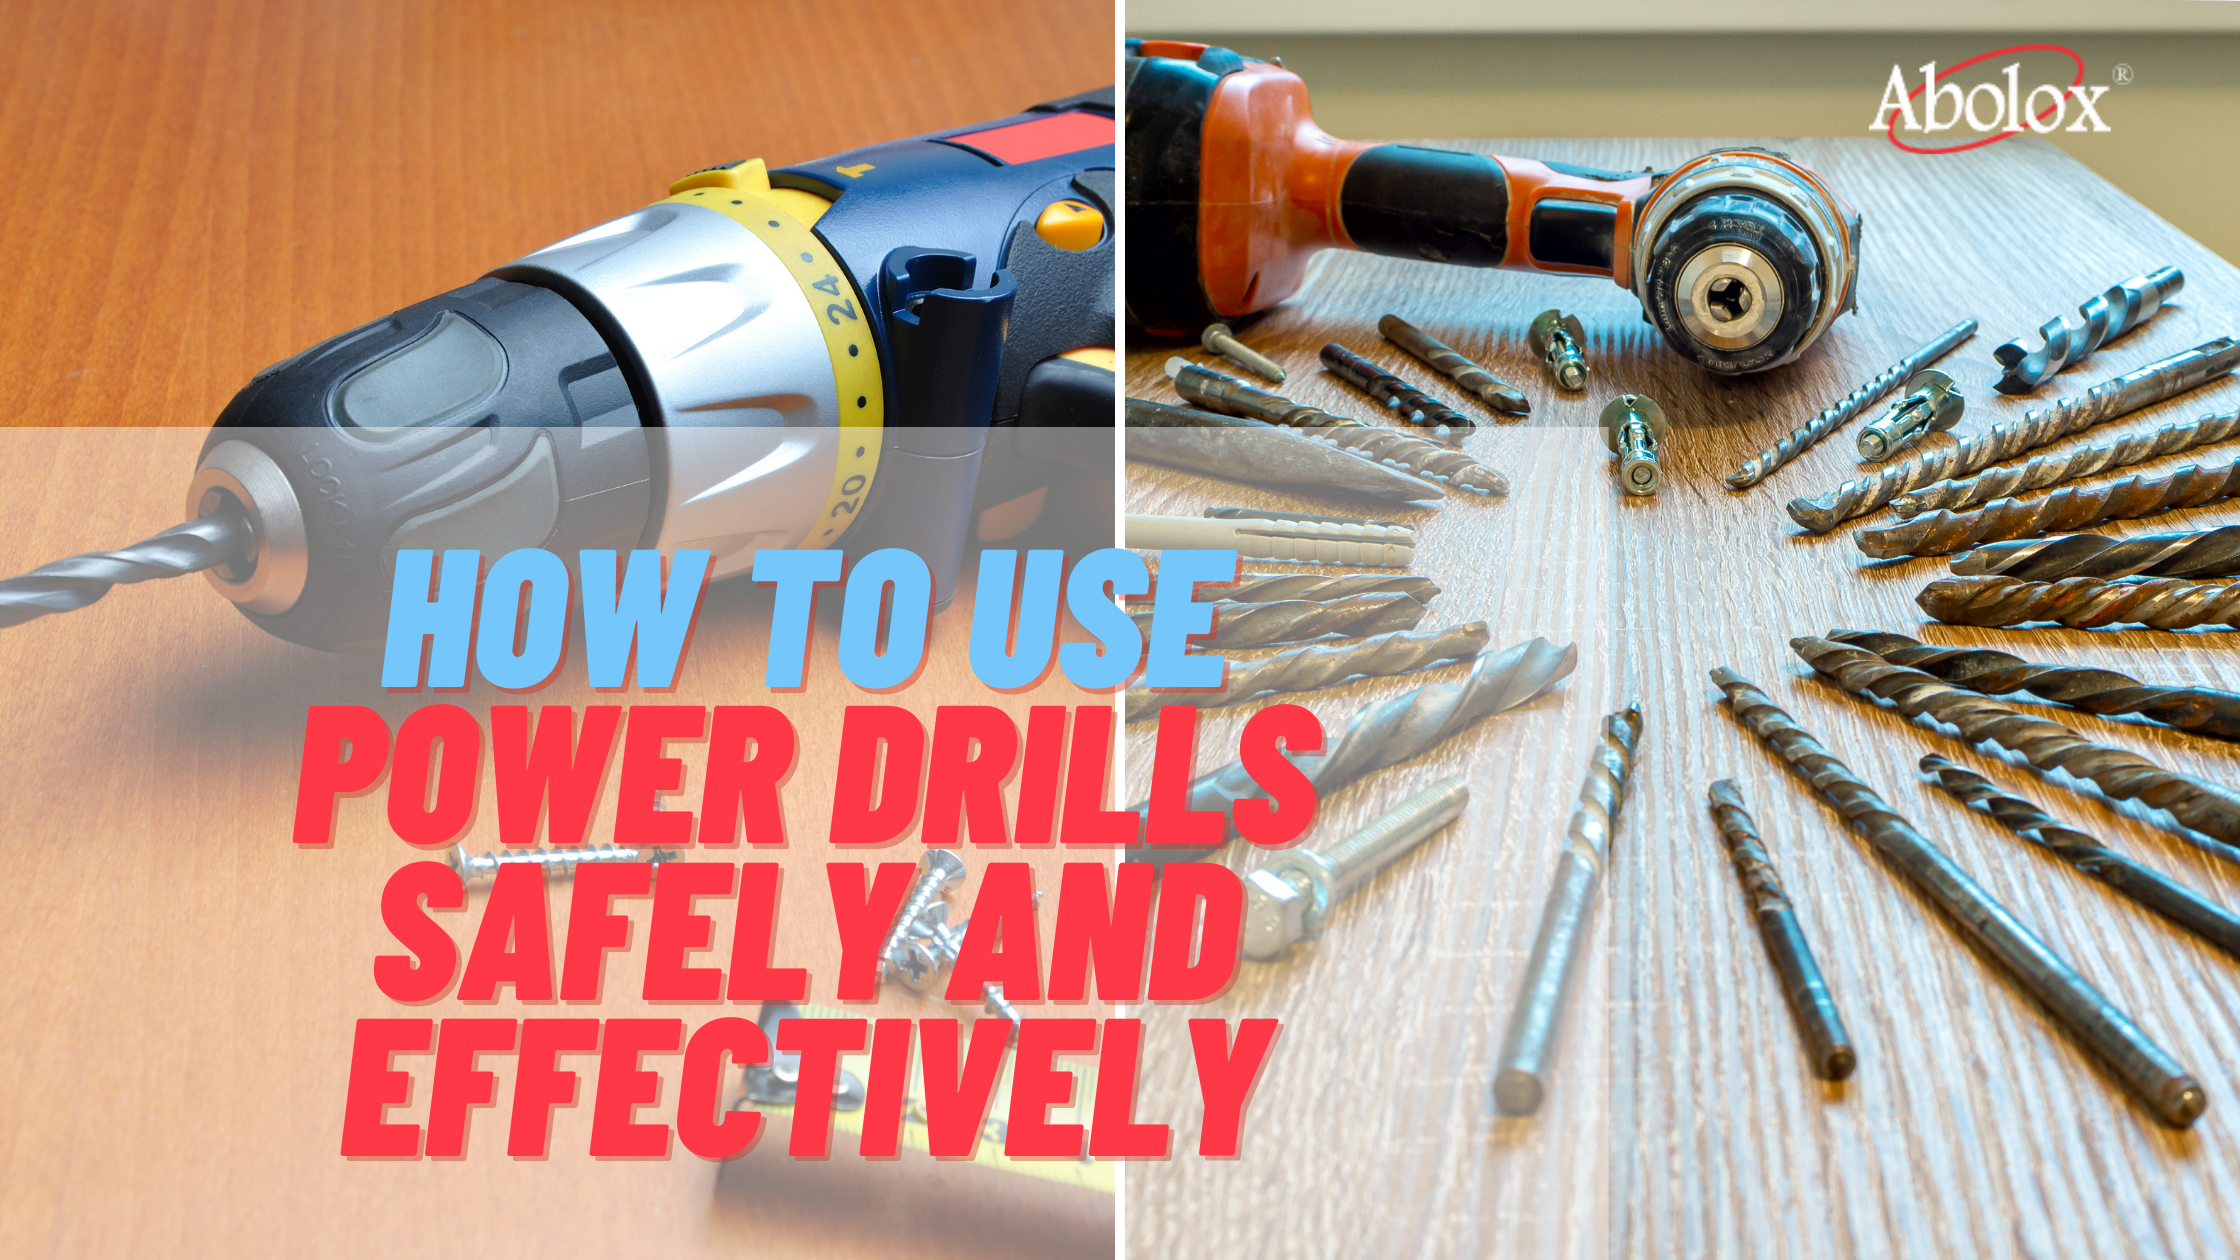 How to Use Power Drills Safely and Effectively